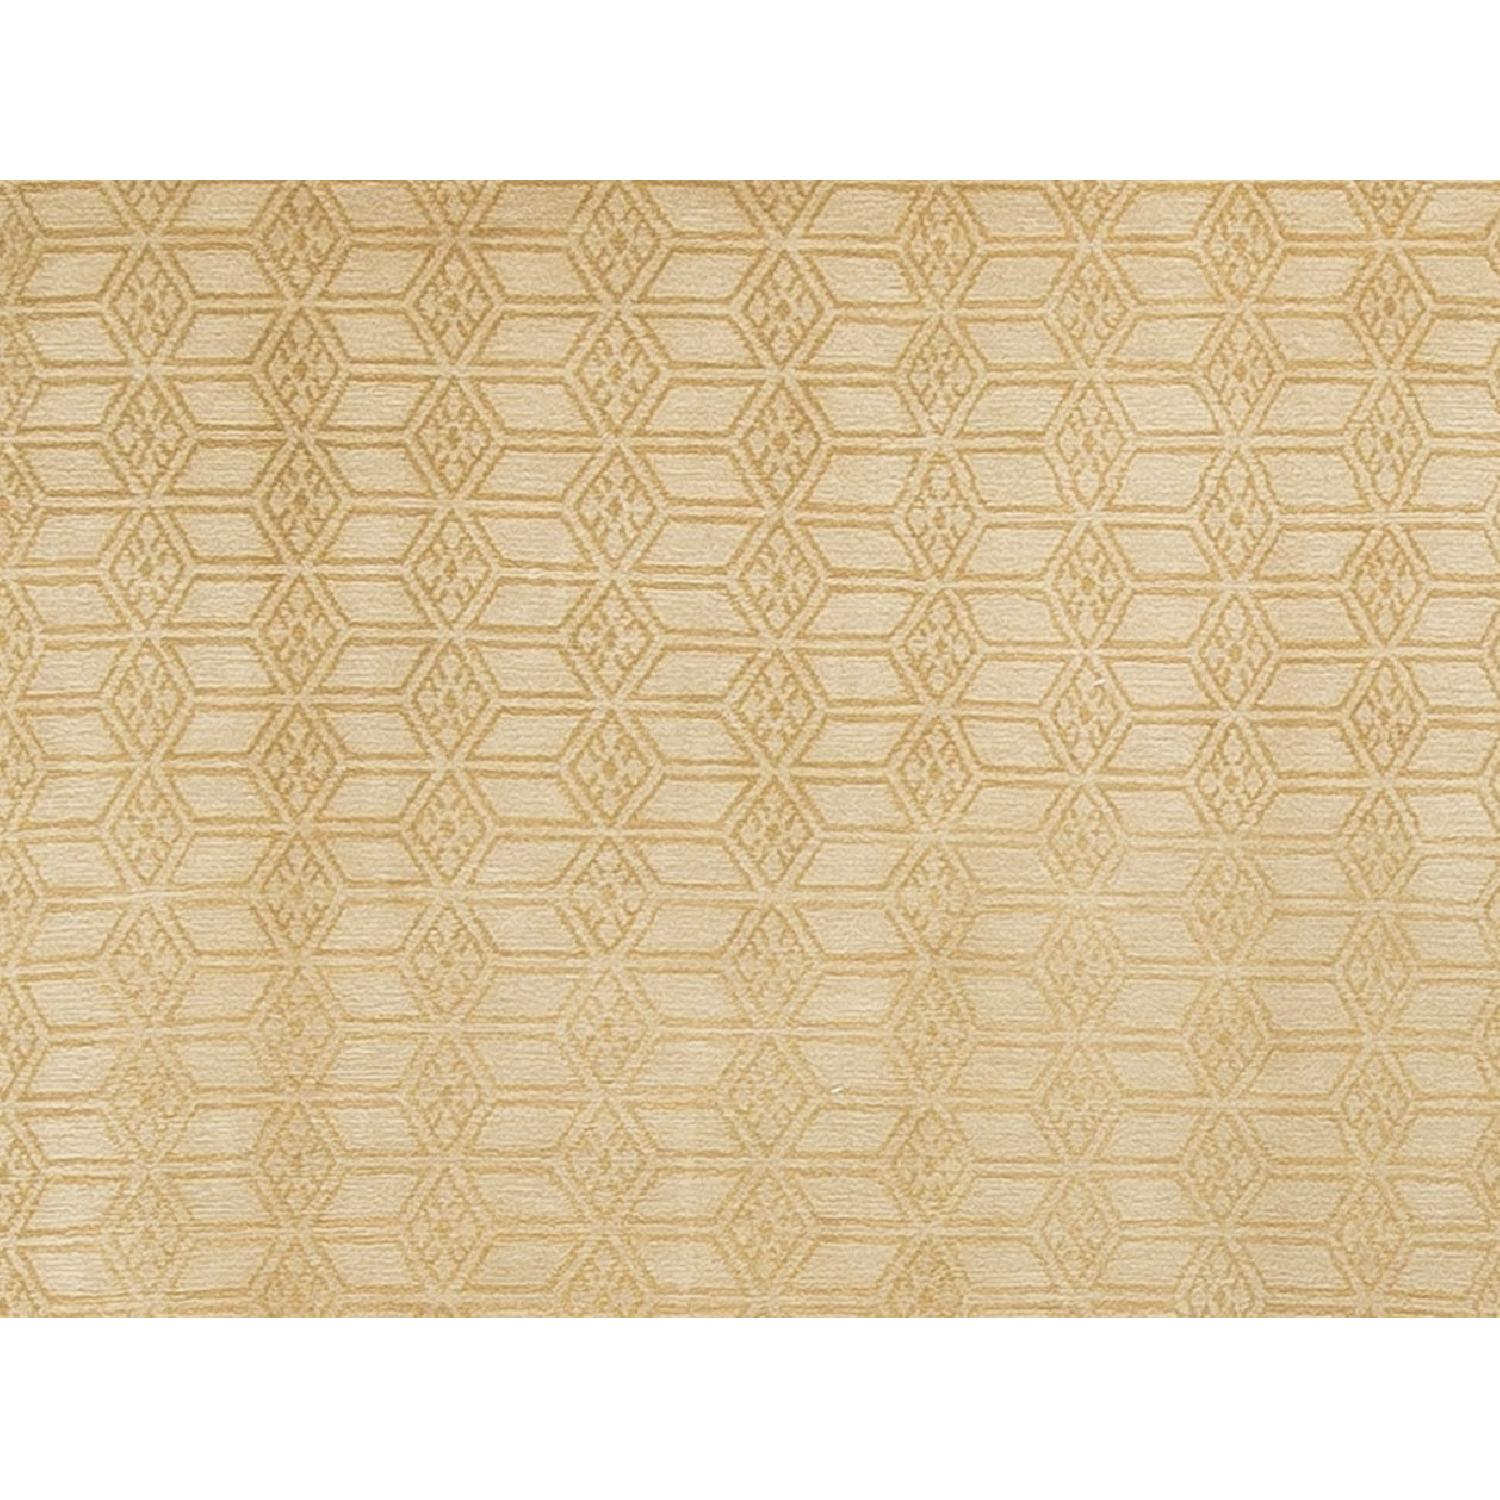 Modern Contemporary Hand Knotted Wool Rug - image-1